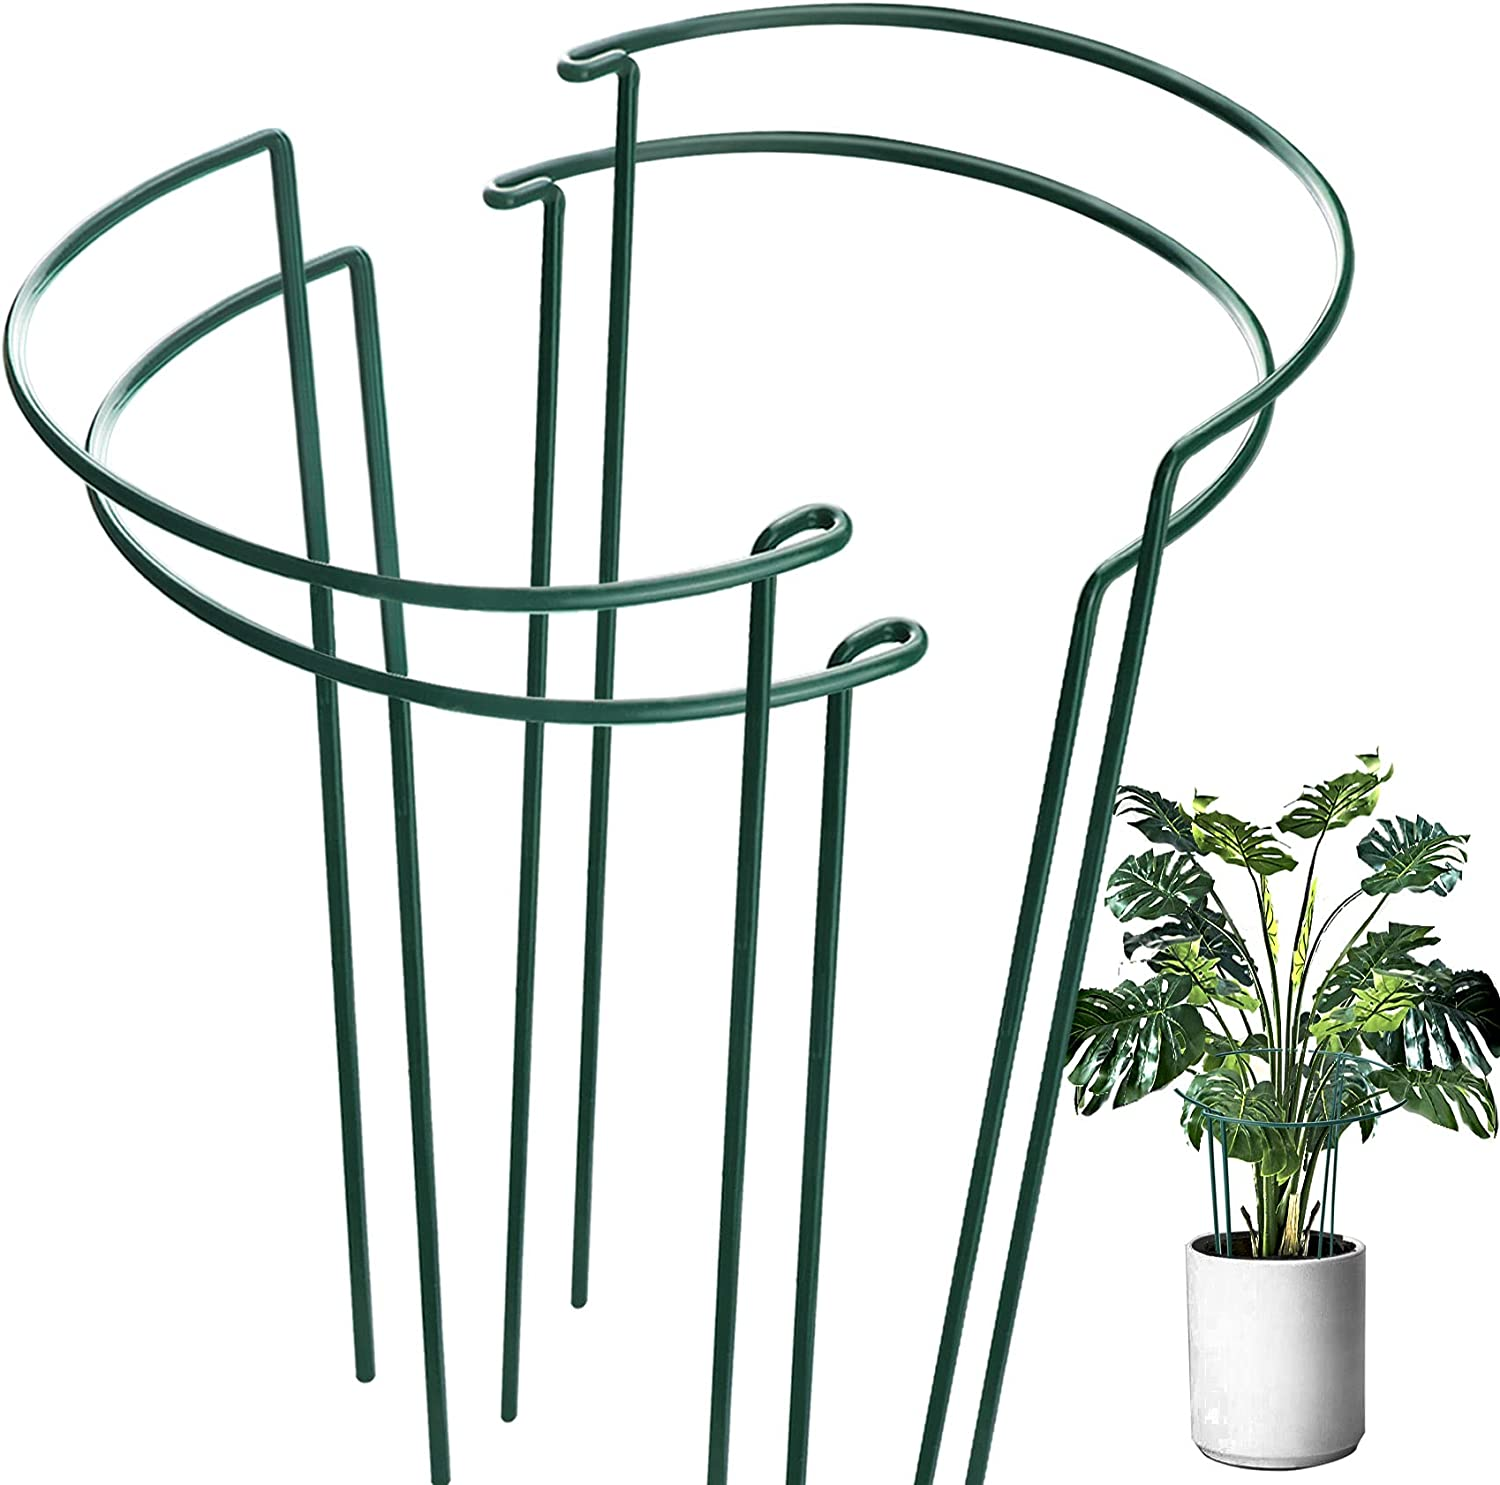 HiGift 4 Popular product Pack Plant Support Stake Indianapolis Mall Metal for Garden Ring Stakes